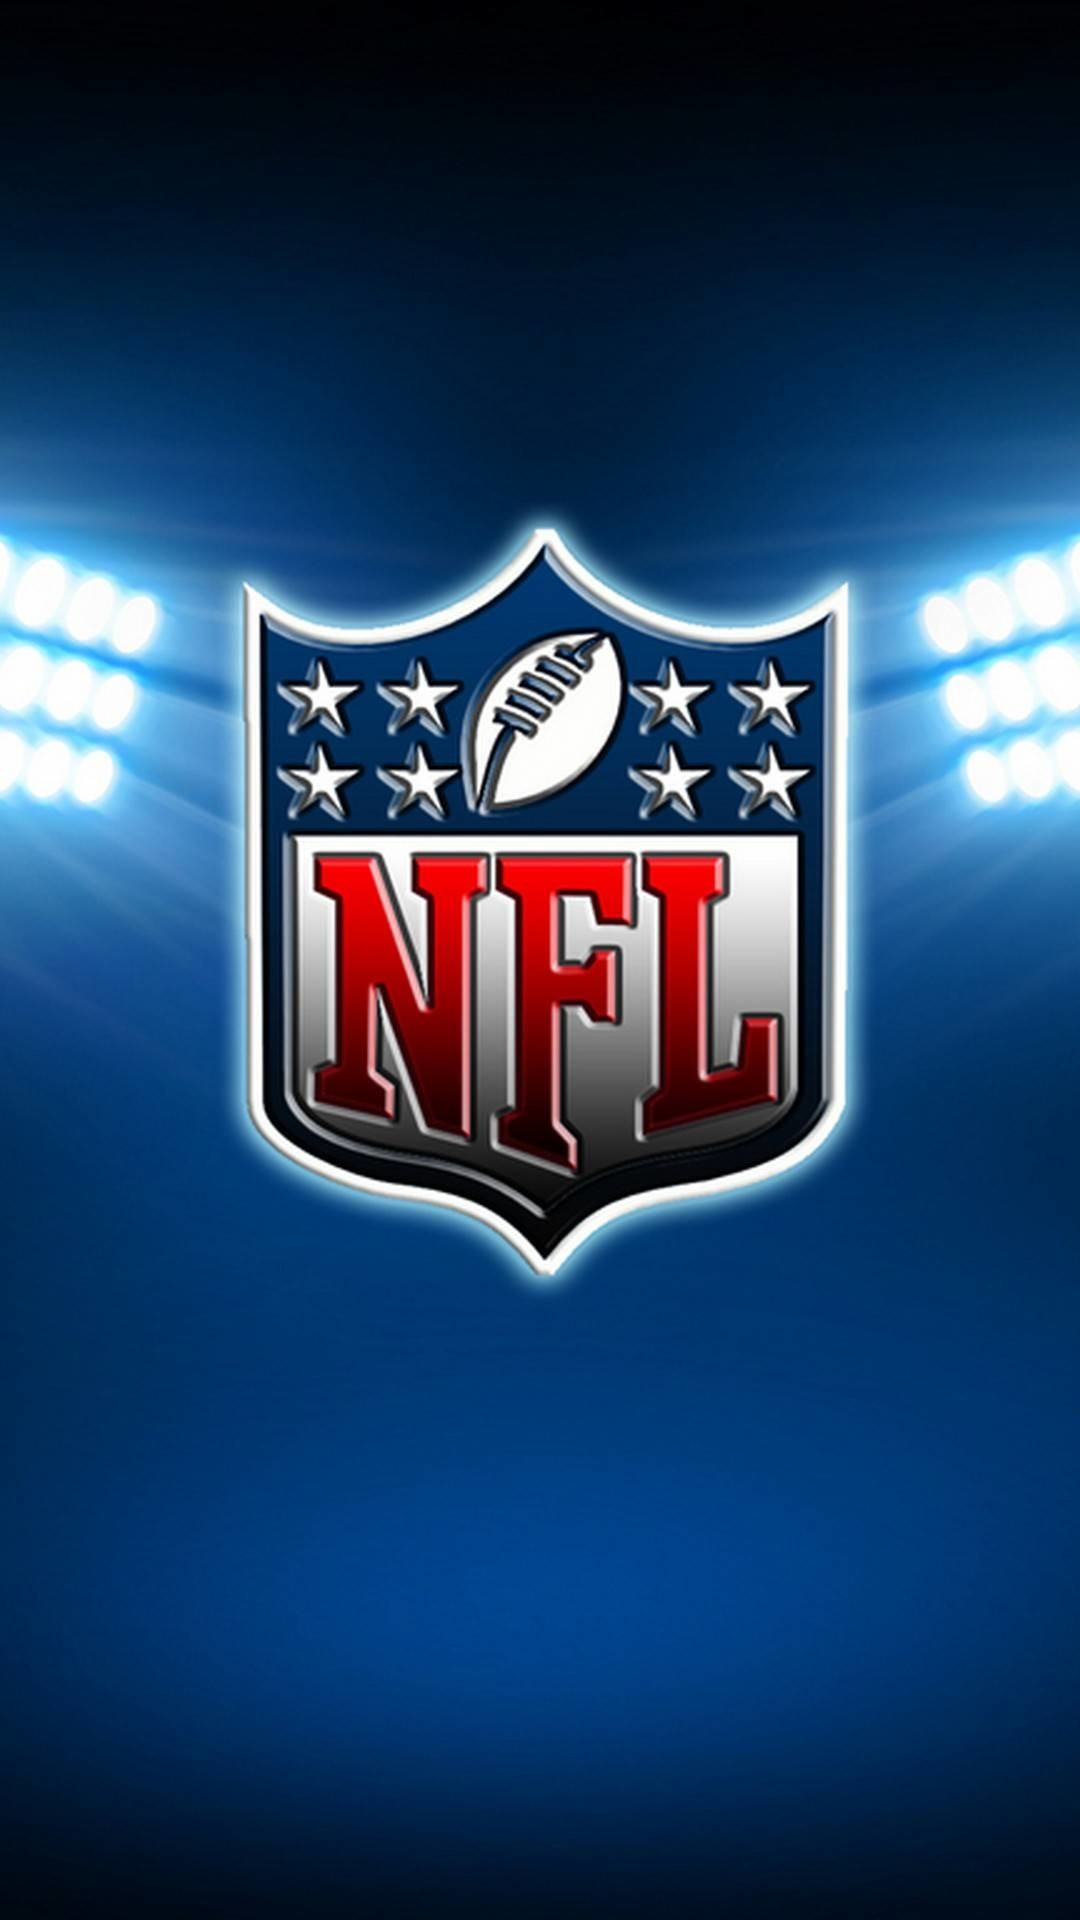 Nfl Nfl Football Wallpaper 63 43 Images